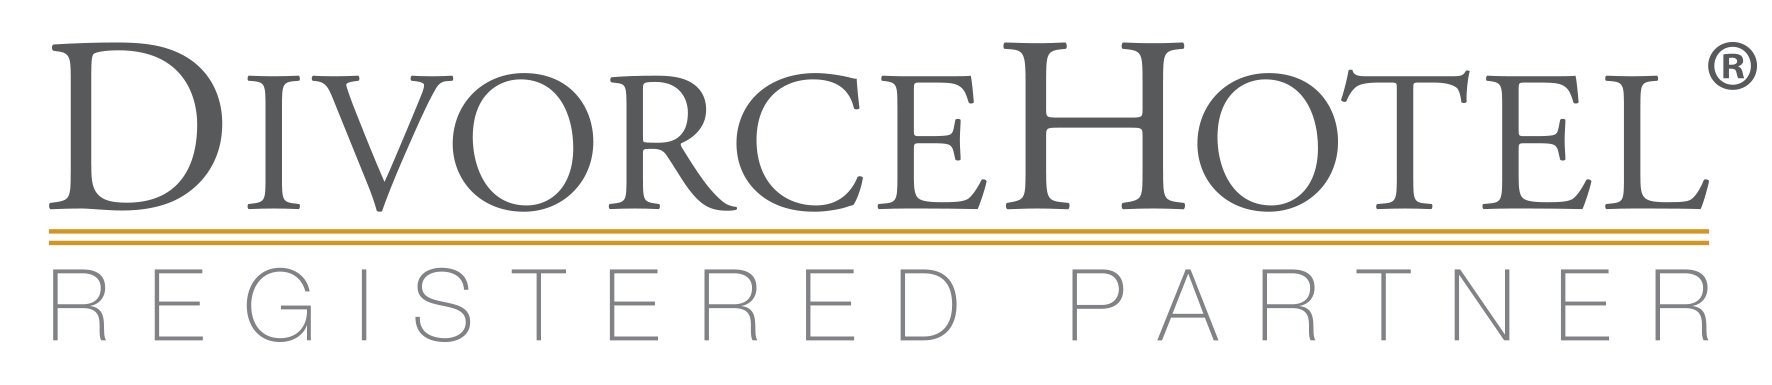 DivorceHotel Registered Partner